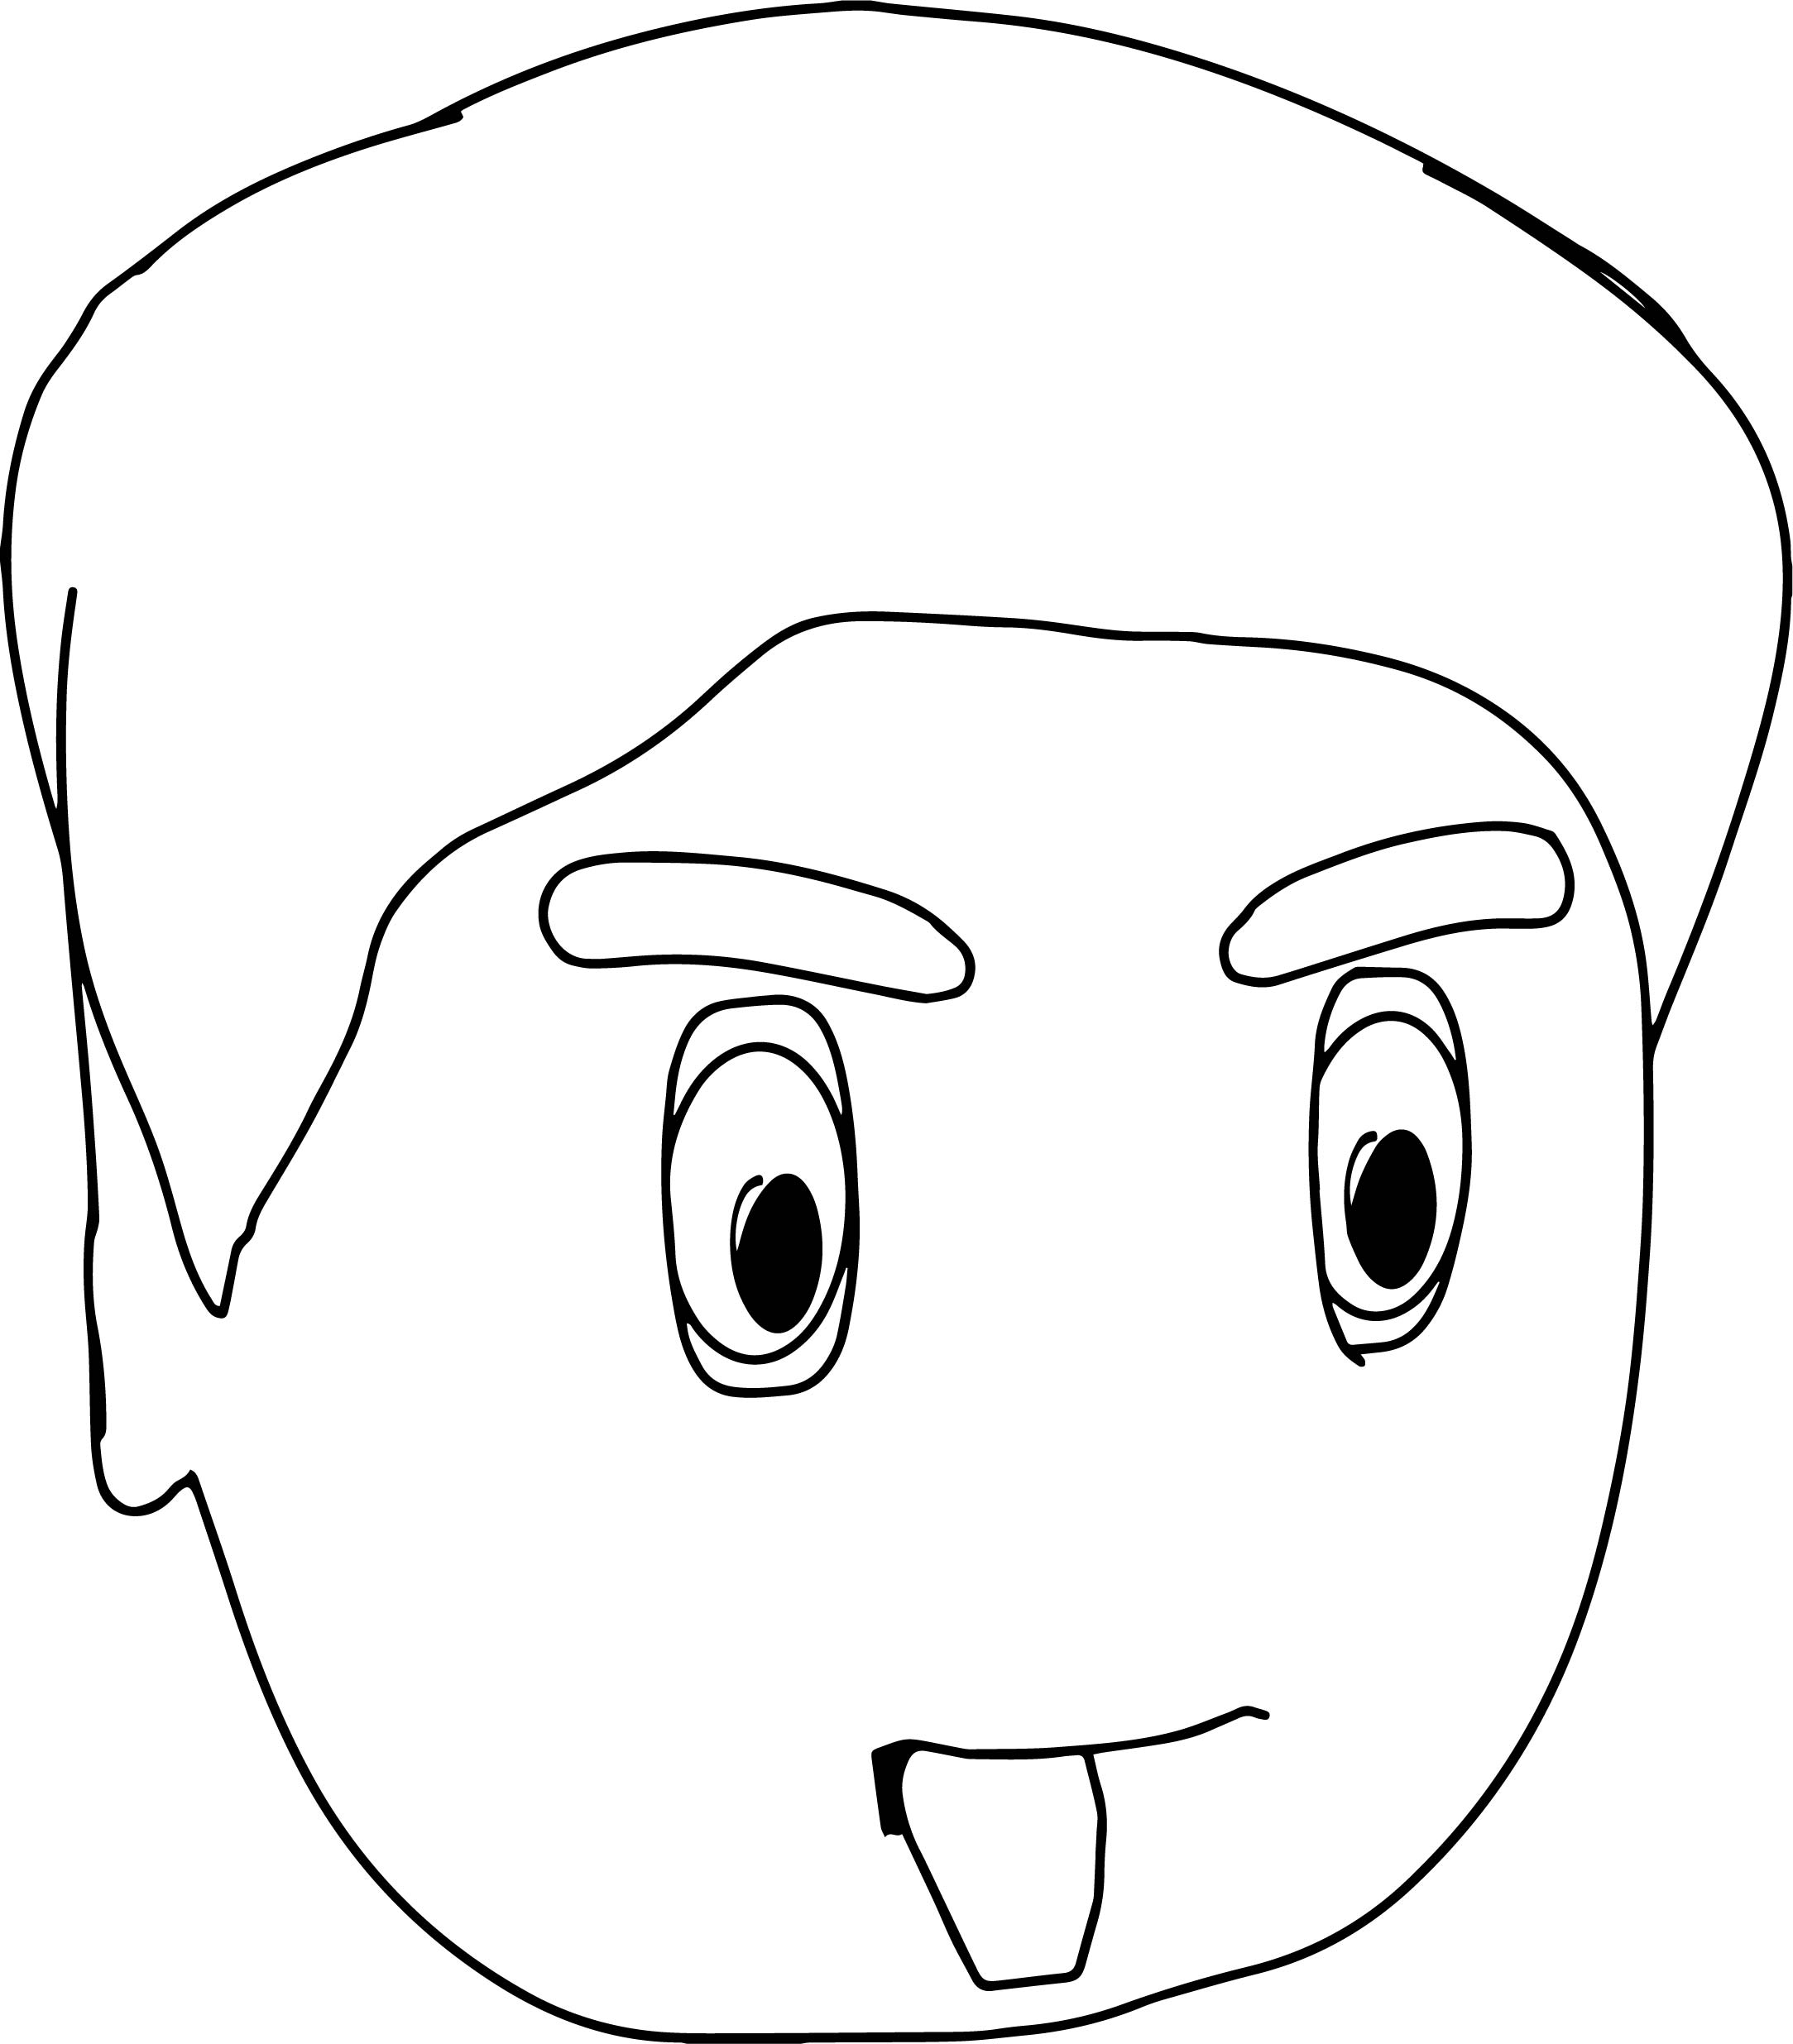 face coloring page - cartoon girl face side view sketch coloring page